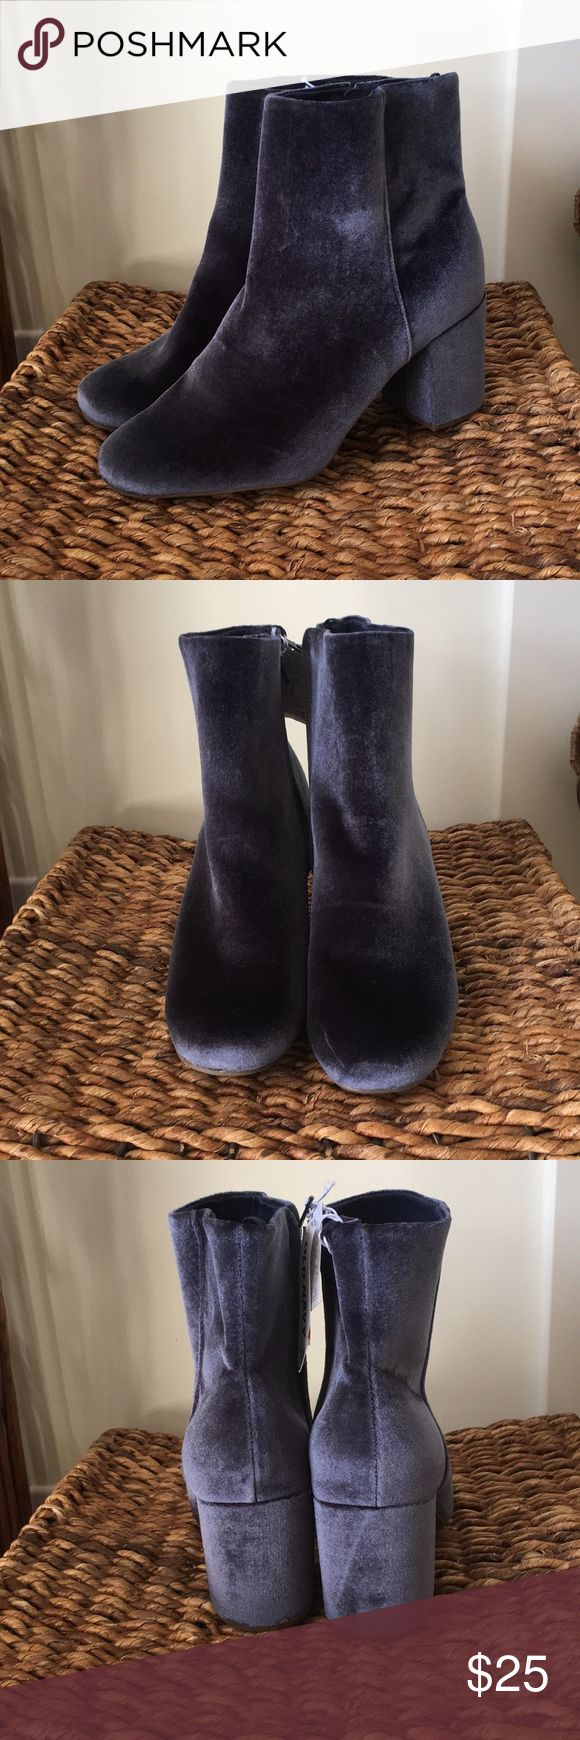 """Super amazing denim blue velvet booties w/3"""" heels These amazing Velvet booties have a 3 inch chunky heel with a zippered side for easy on and off. They are lined in a darker denim blueAnd look amazing with your favorite skinny jeans, skirts, or dresses. Old Navy Shoes Ankle Boots & Booties"""